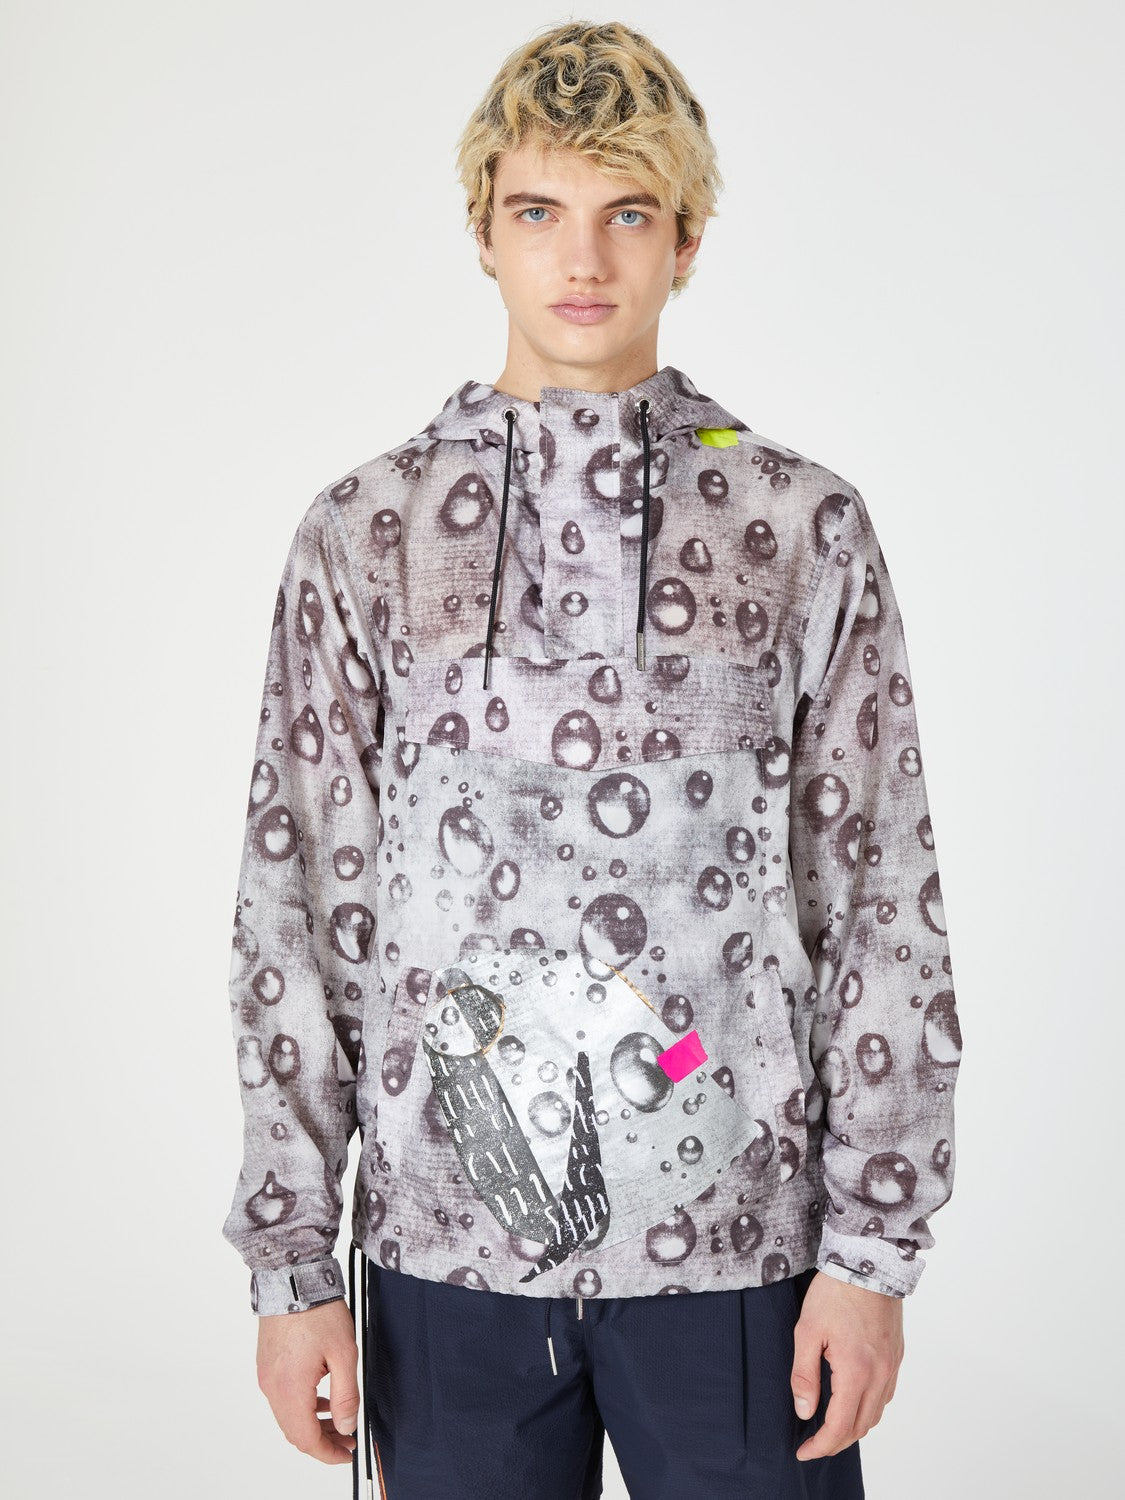 jacket outerwear pocket graphic